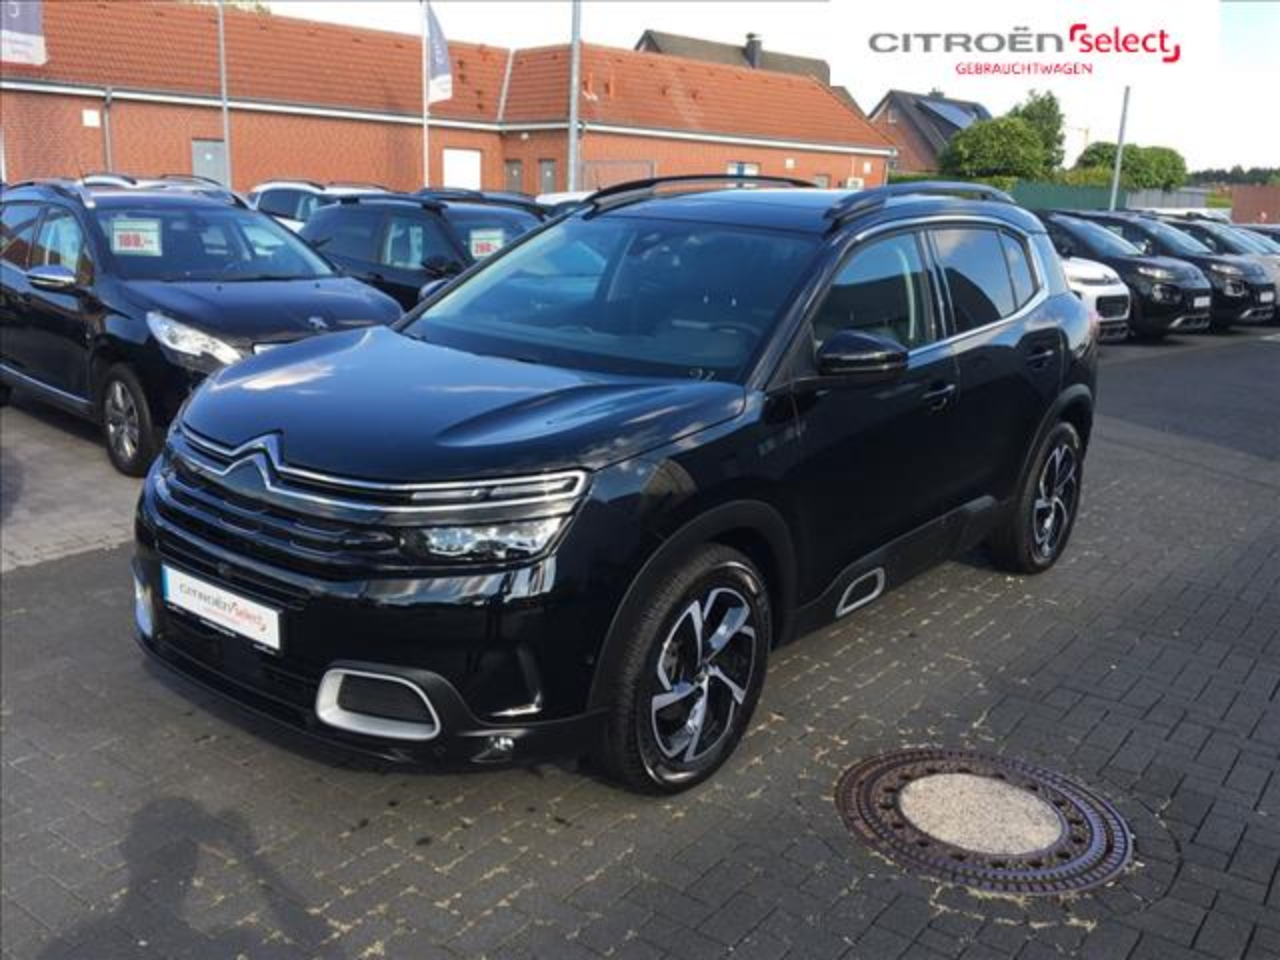 Citroën C5 AIRCROSS Pure Tech 180 Shine EAT8 Start Stop